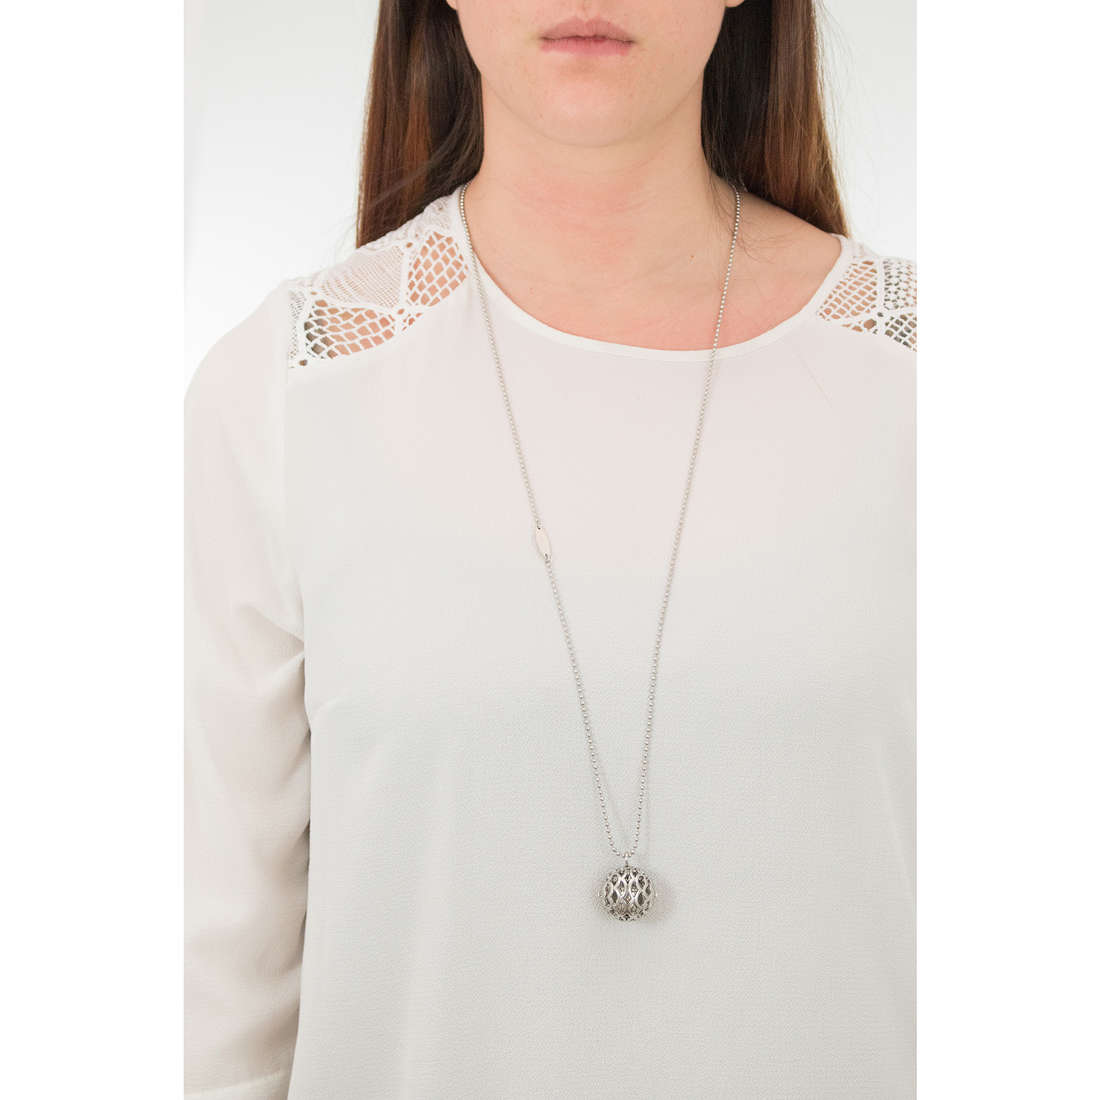 Luca Barra necklaces woman LBCK1061 indosso